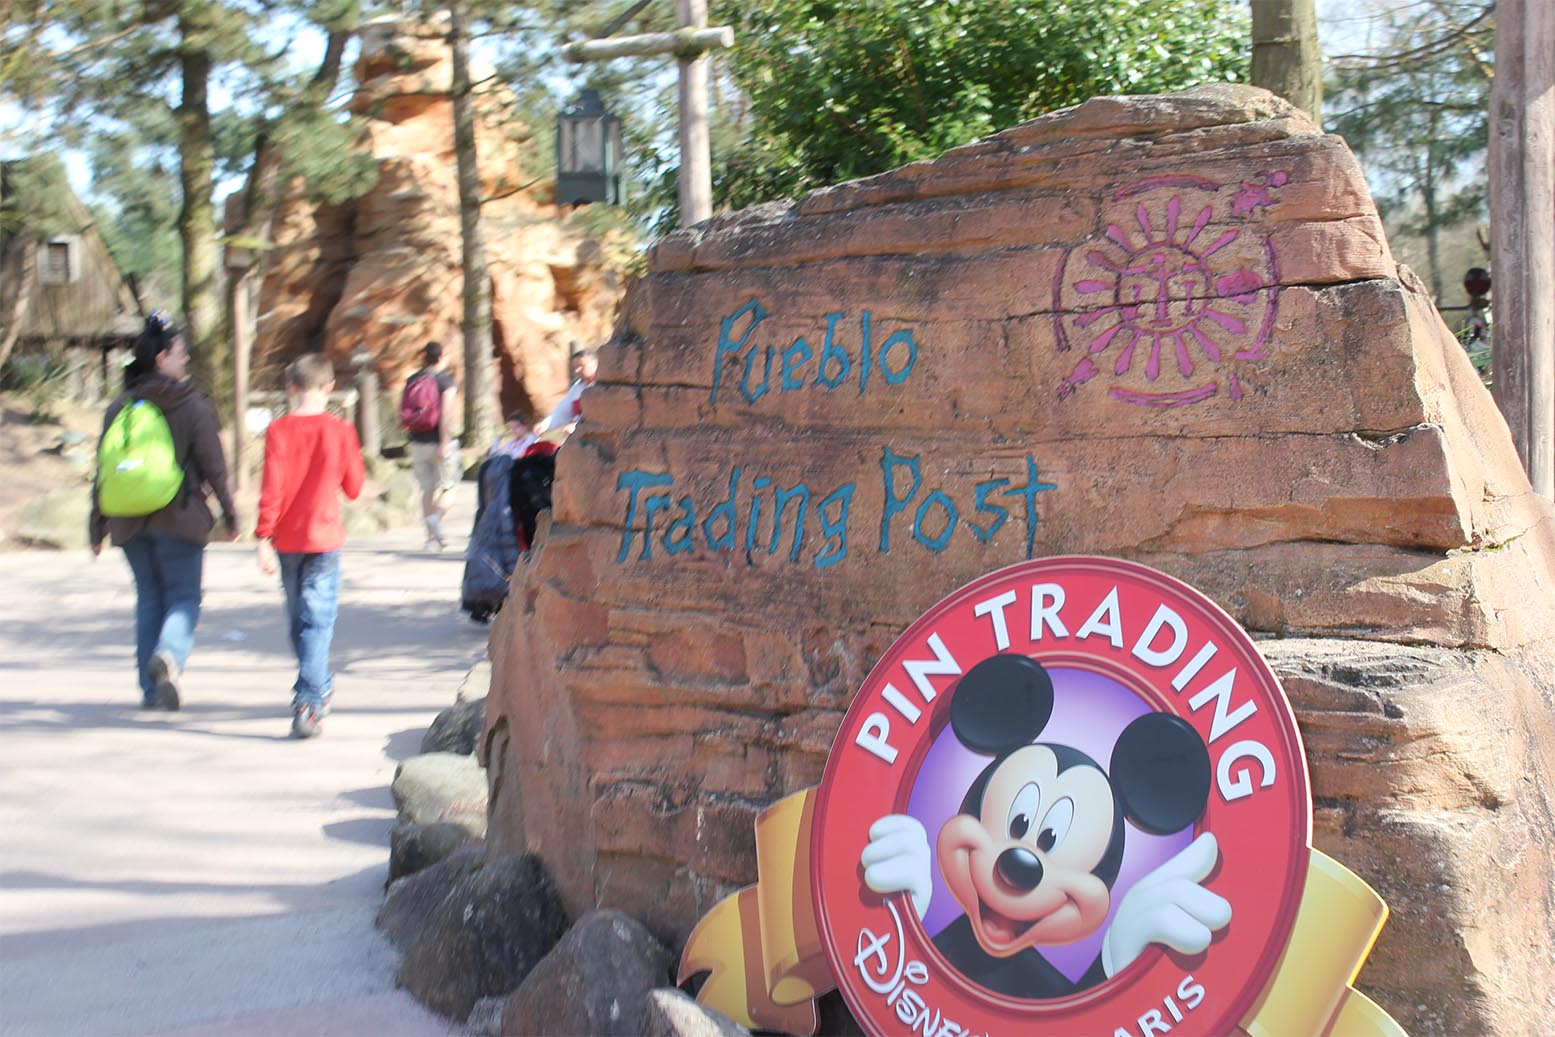 Pueblo Trading Post at Disneyland Paris